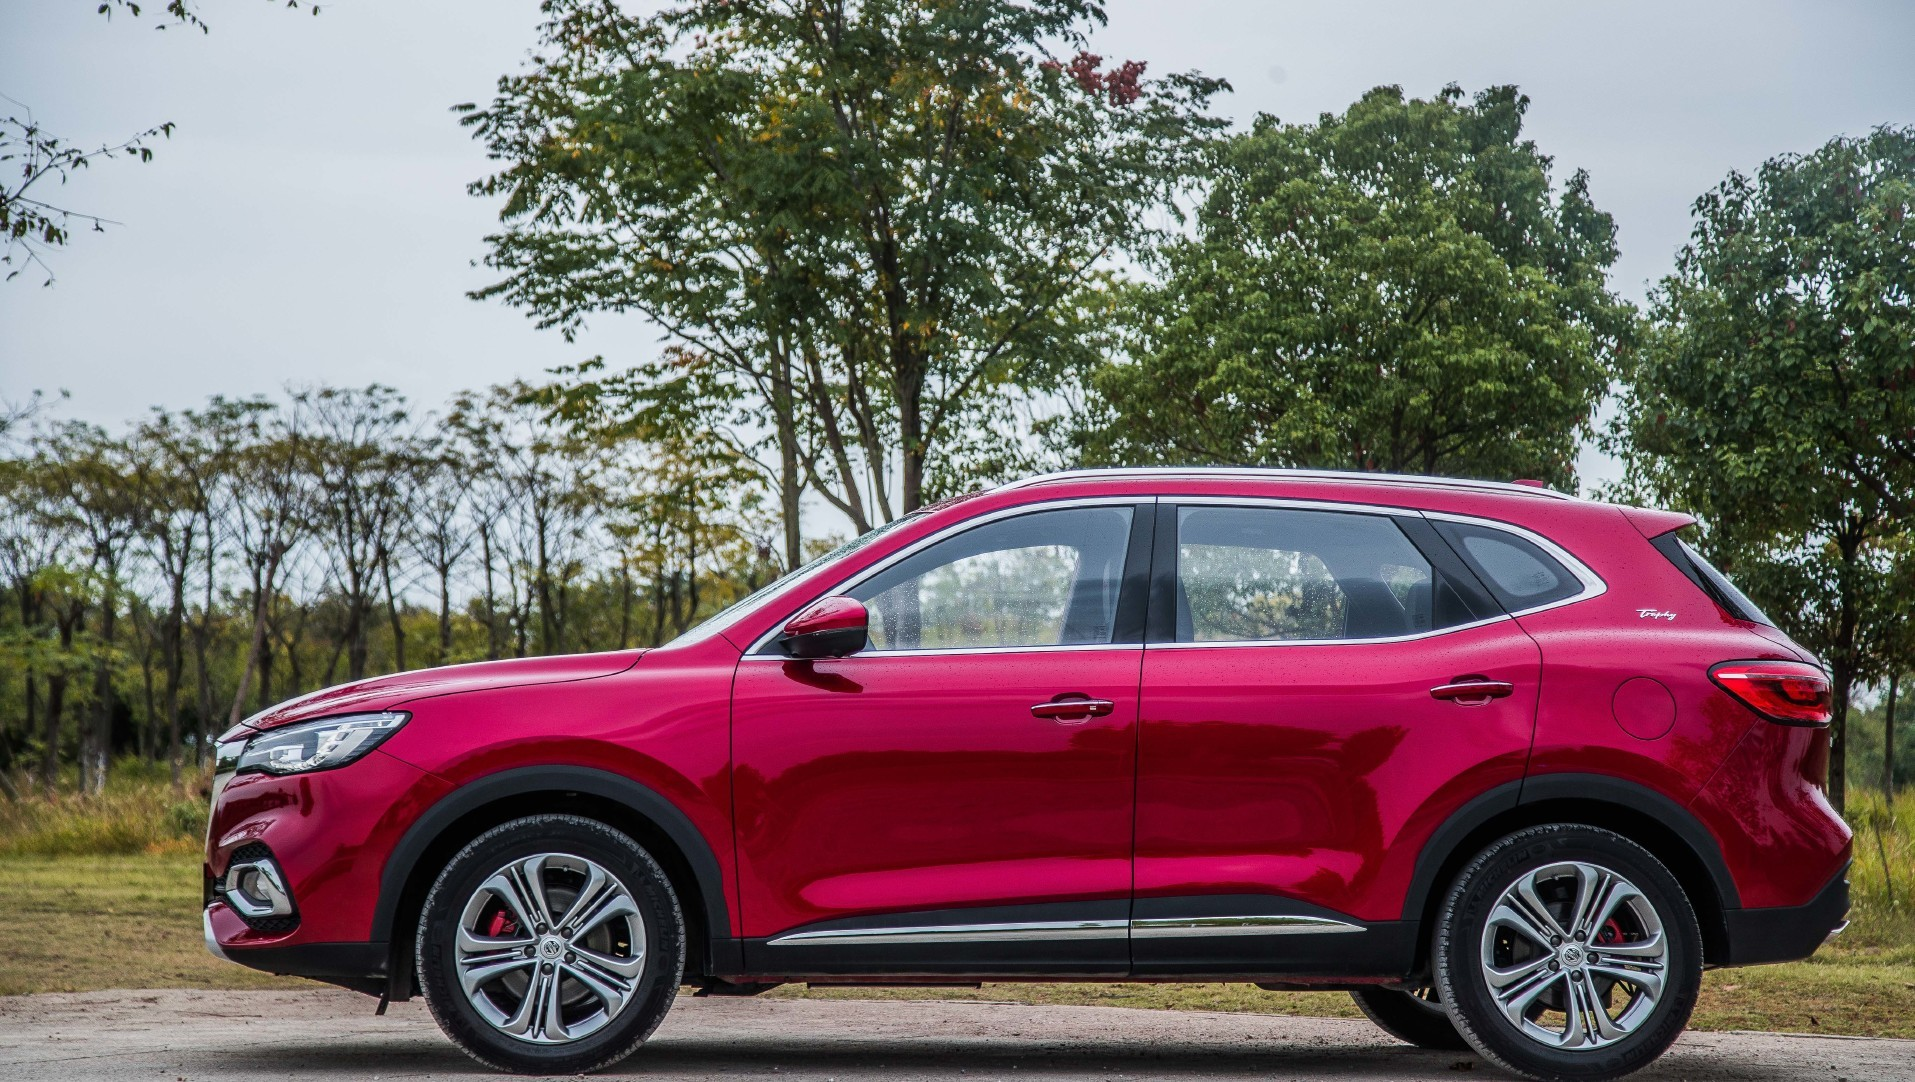 Mg Hector Launch Today Price In India Specification Features